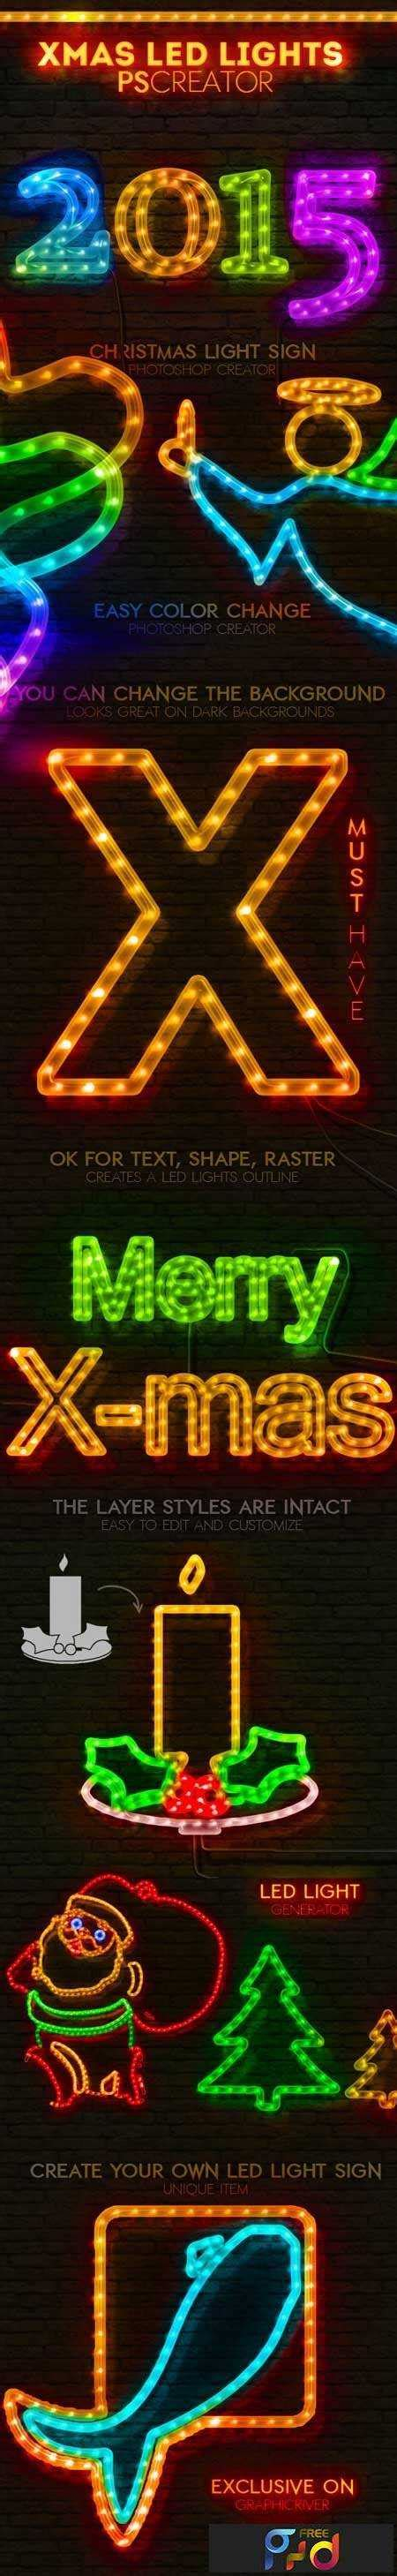 free download christmas light action for photoshop 1705278 led light rope photoshop 9475071 freepsdvn